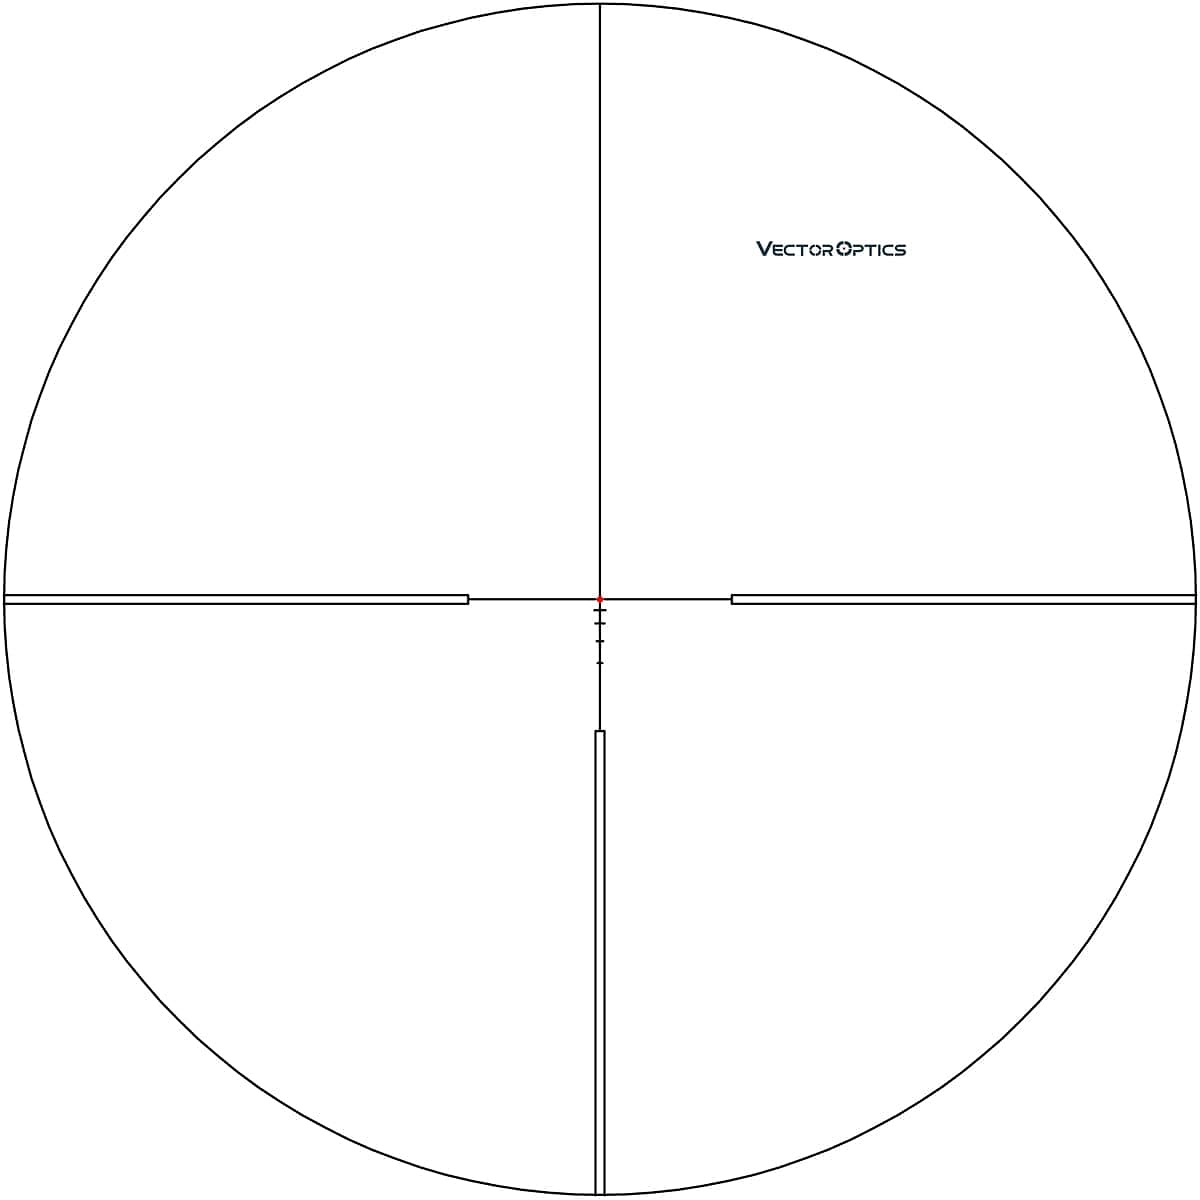 SCOC-13II_reticle